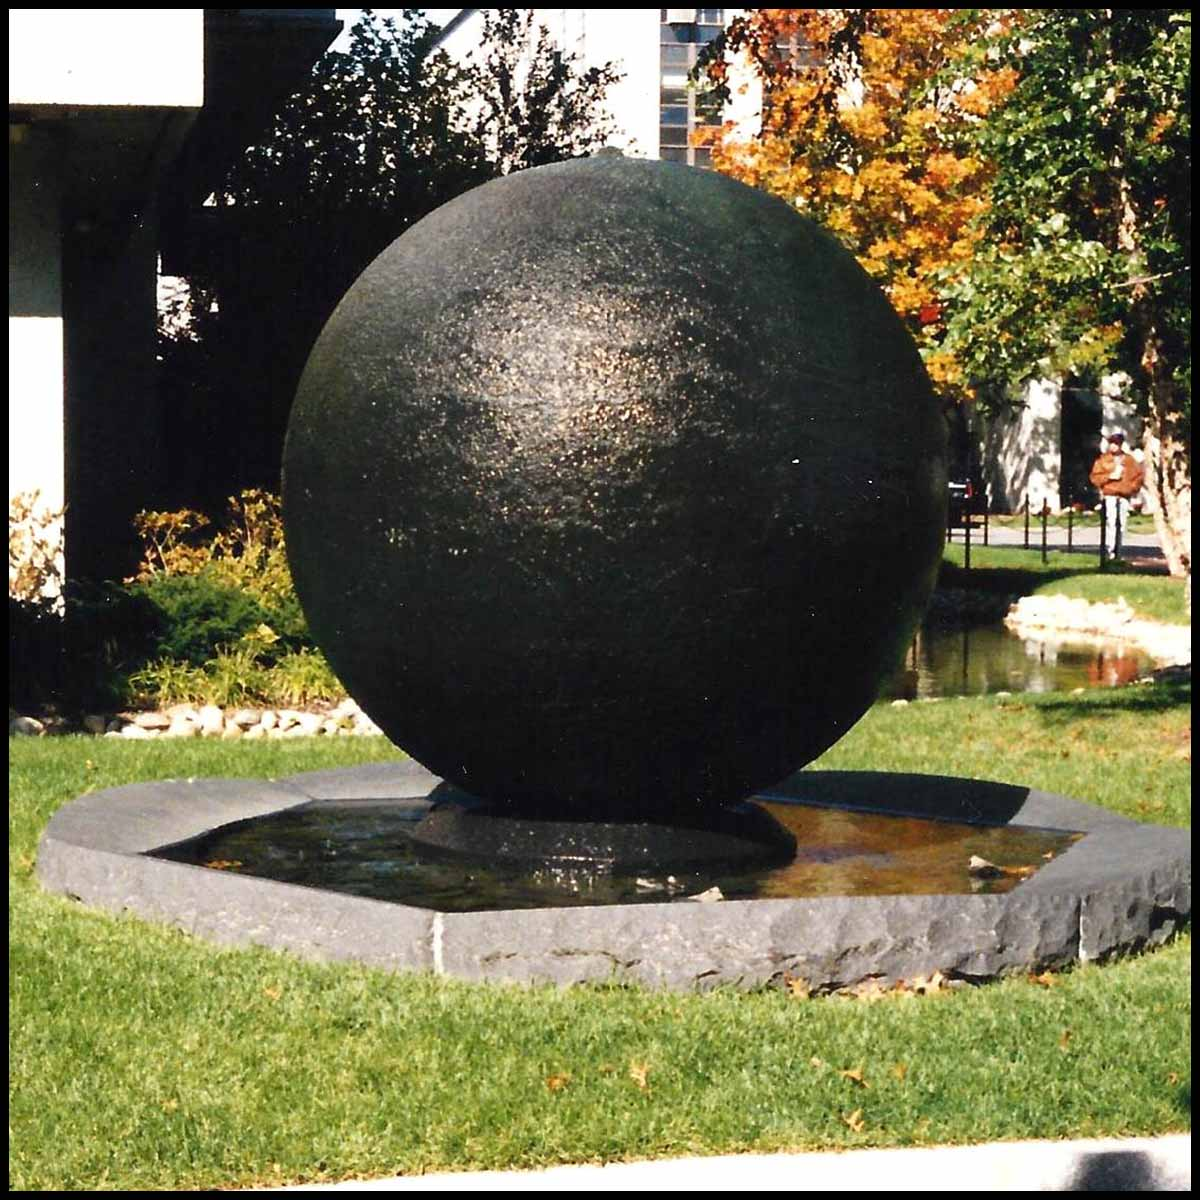 photo of black-colored sphere in stone-rimmed pool of water surrounded by landscaping and buildings